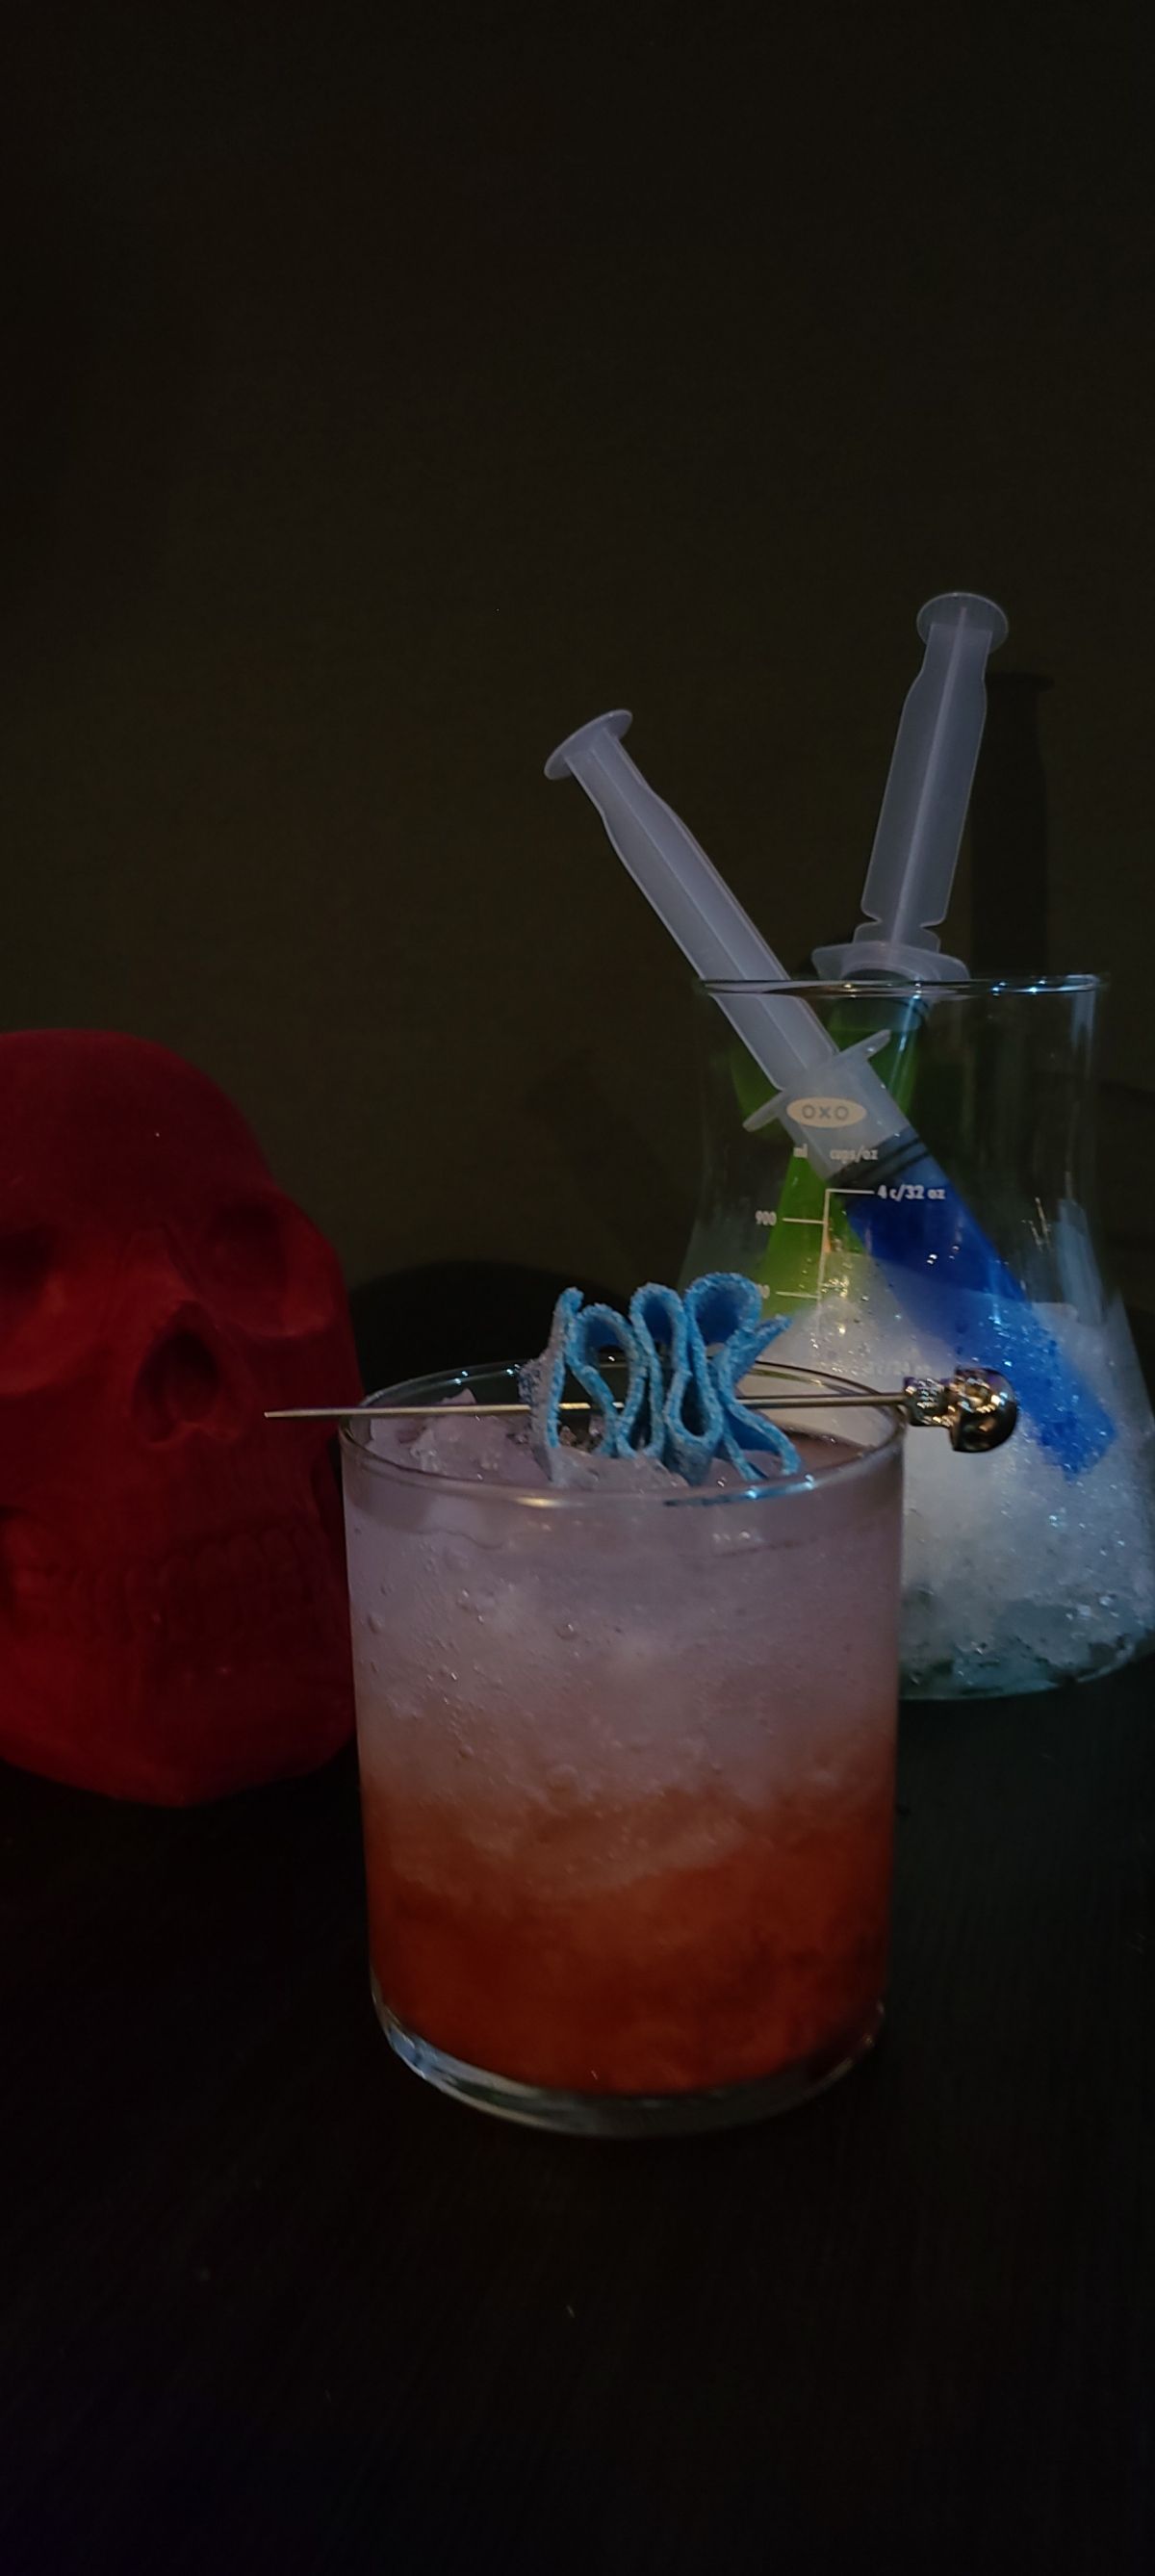 Red Queen Bramble drinks sits on black table. The drink is red and has a skewered blue candy on top to act as the T-Virus. In the background a red skull sits with a beaker. The beaker has ice with two syringes containing a blue liquid (T-Virus) and a green liquid (Antivirus).